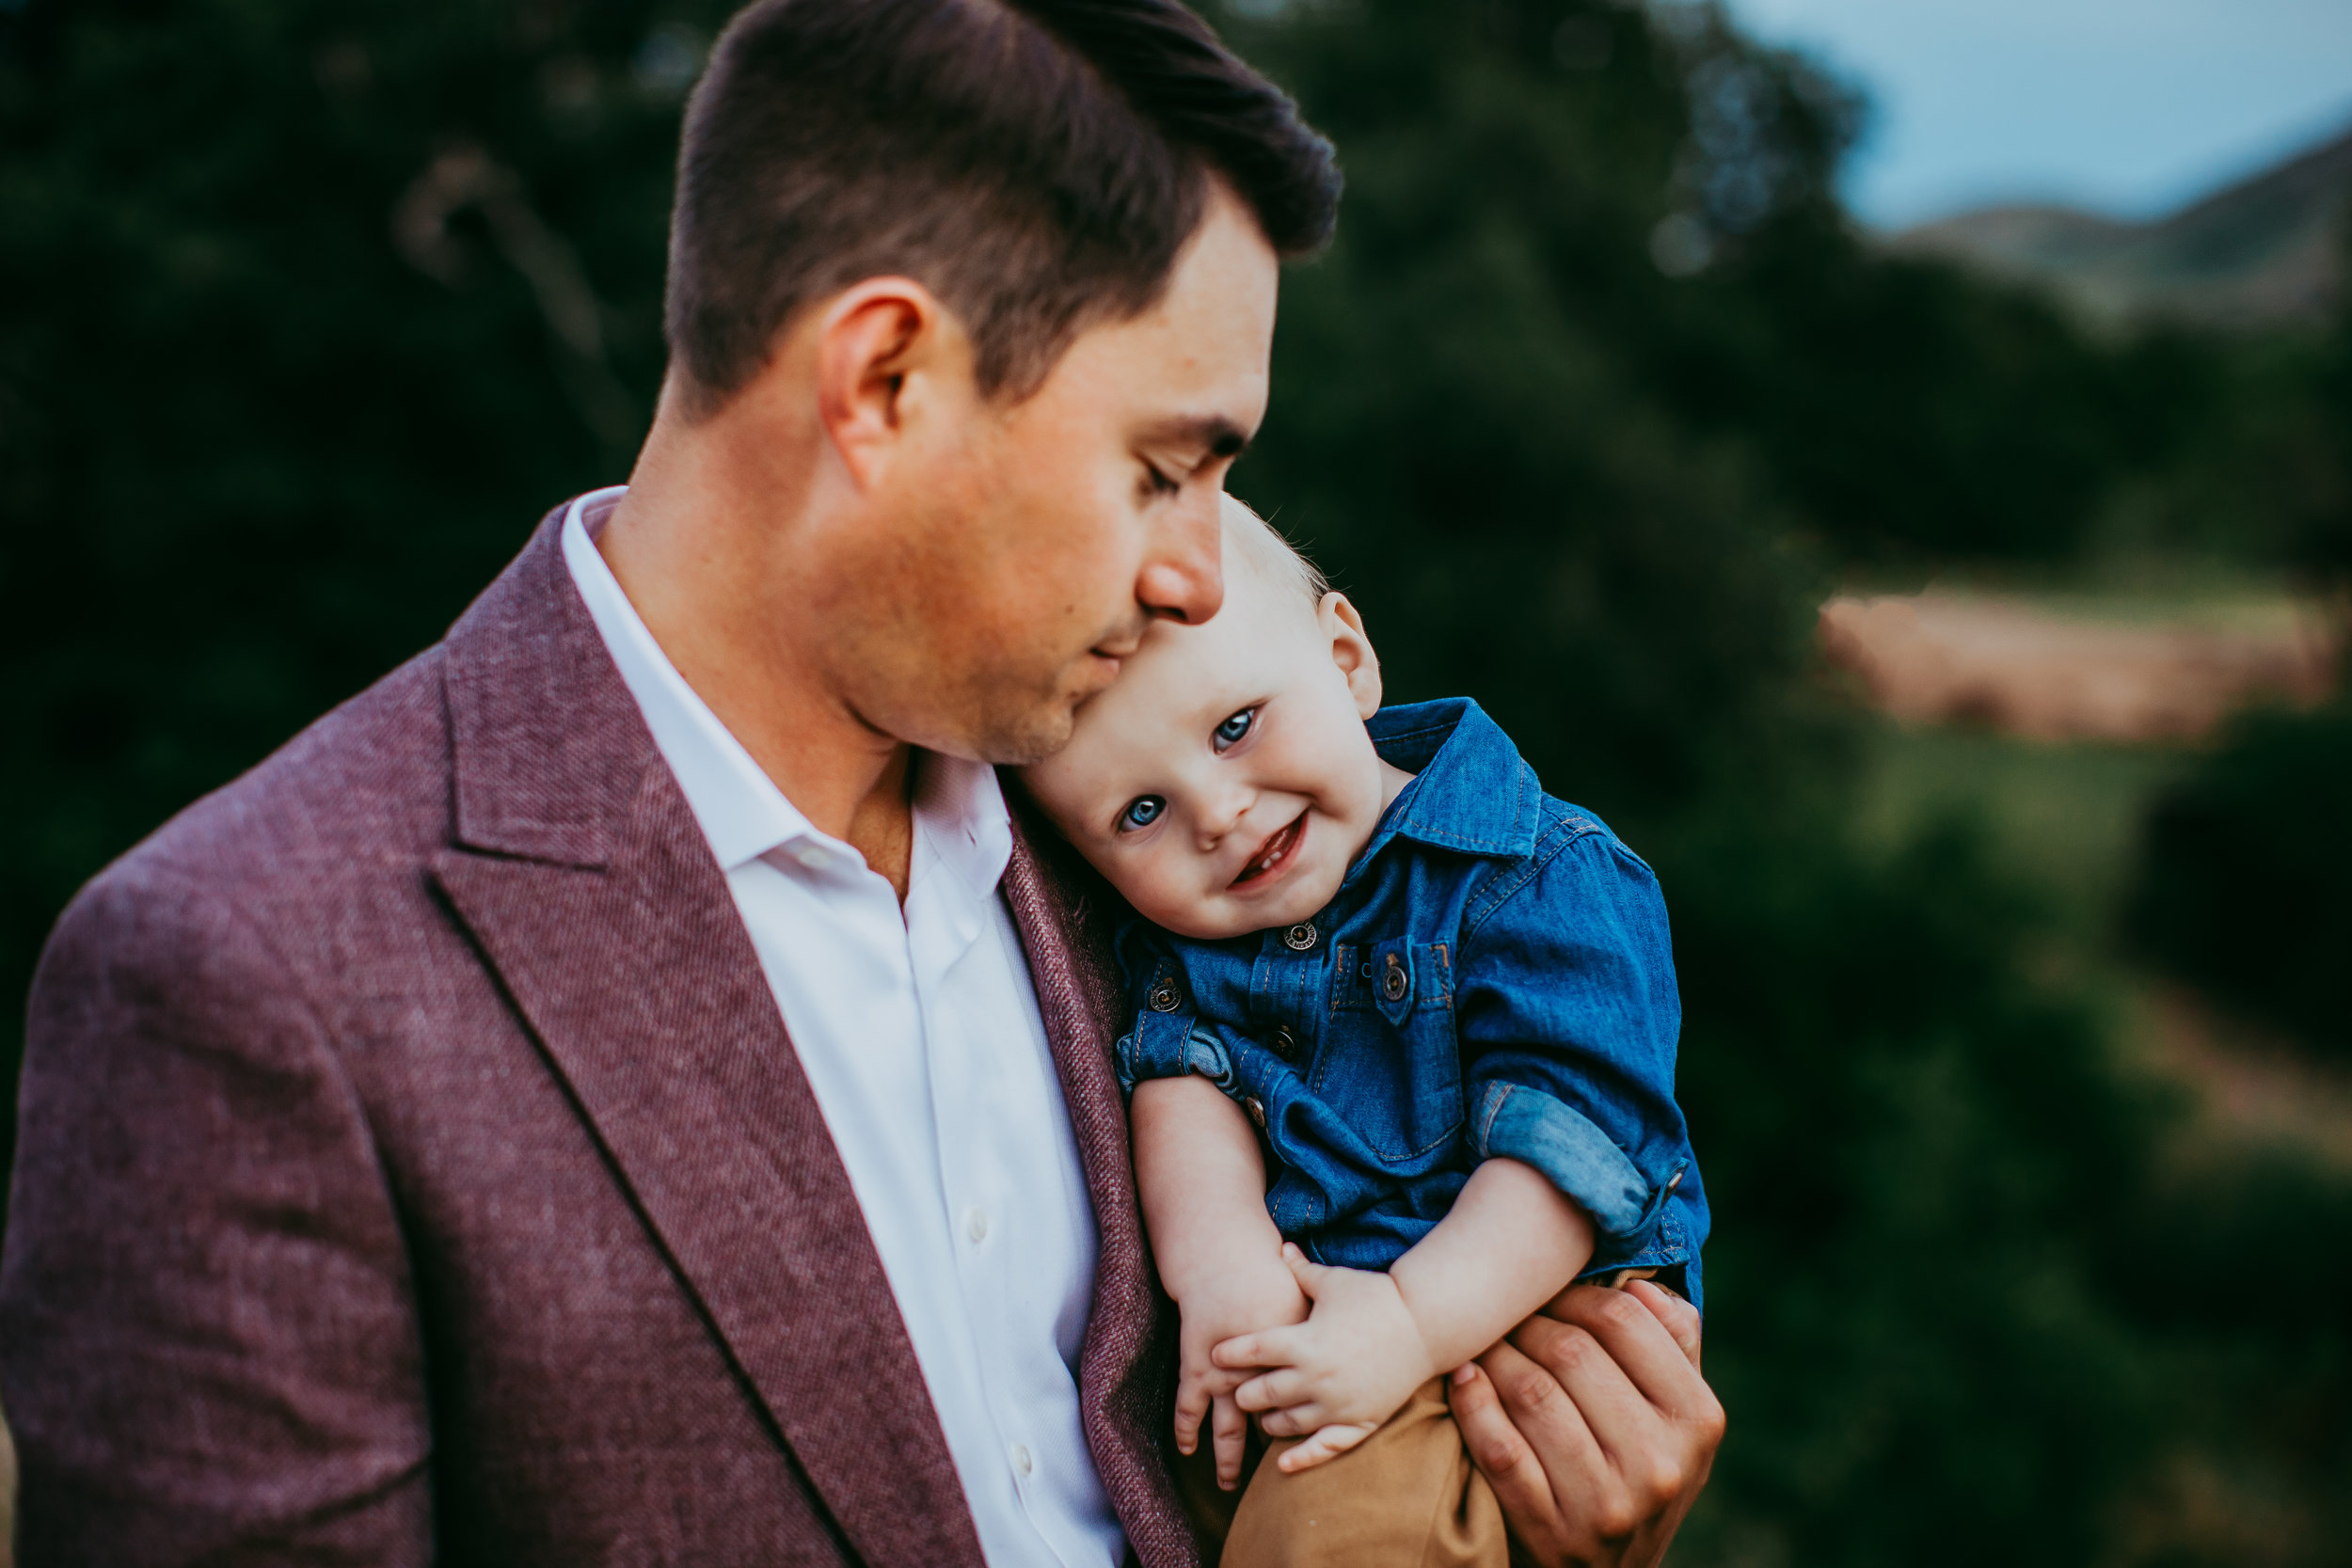 Dad and little one captured snuggling in a candid moment between them #tealawardphotography #texasfamilyphotographer #amarillophotographer #amarillofamilyphotographer #lifestylephotography #emotionalphotography #familyphotosoot #family #lovingsiblings #purejoy #familyphotos #familyphotographer #greatoutdoors #unposed #naturalfamilyinteraction